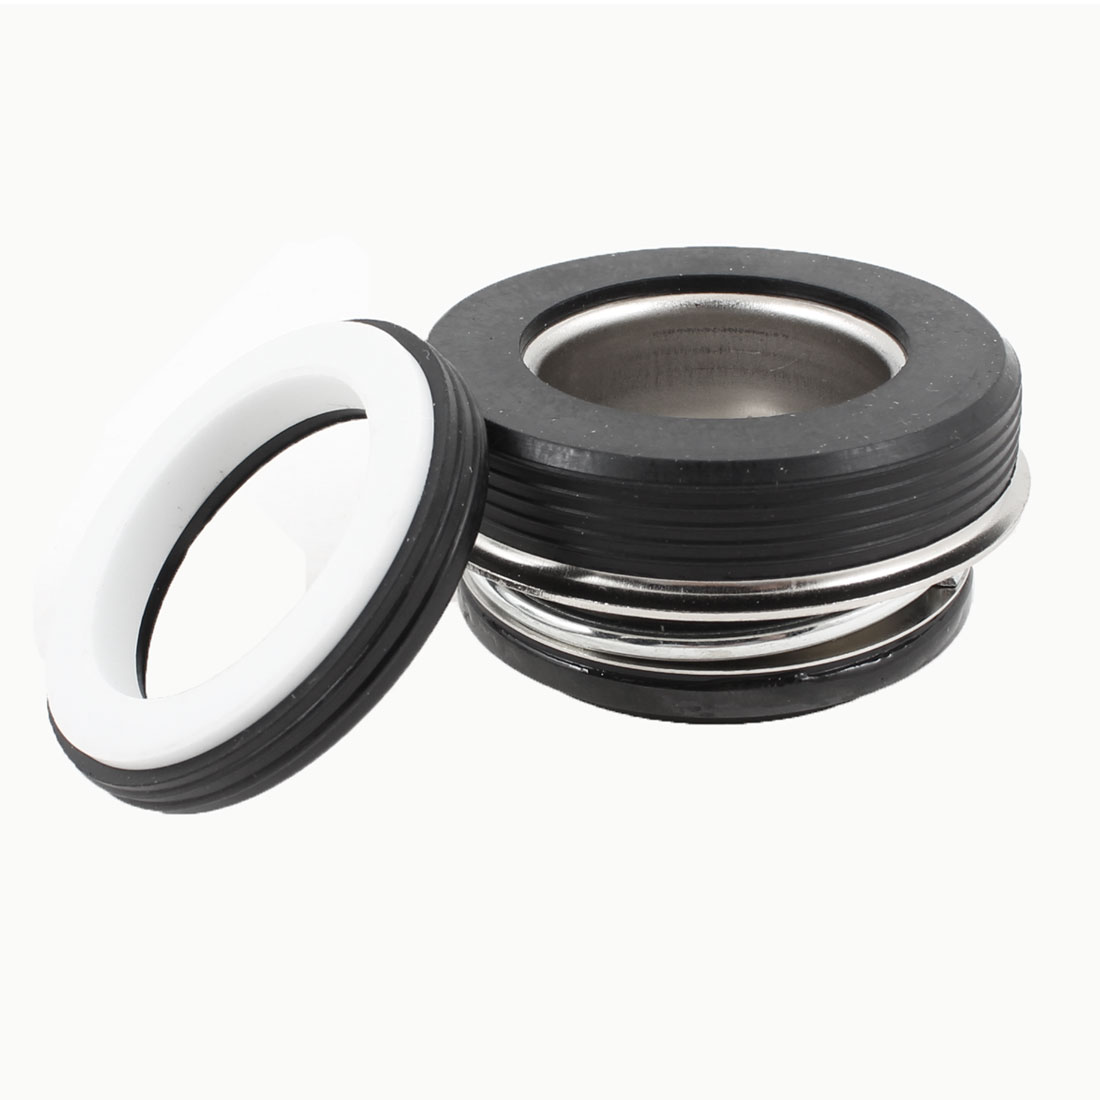 Coiled Spring Rubber Bellow Sealing 30mm Internal Diameter Mechanical Seal